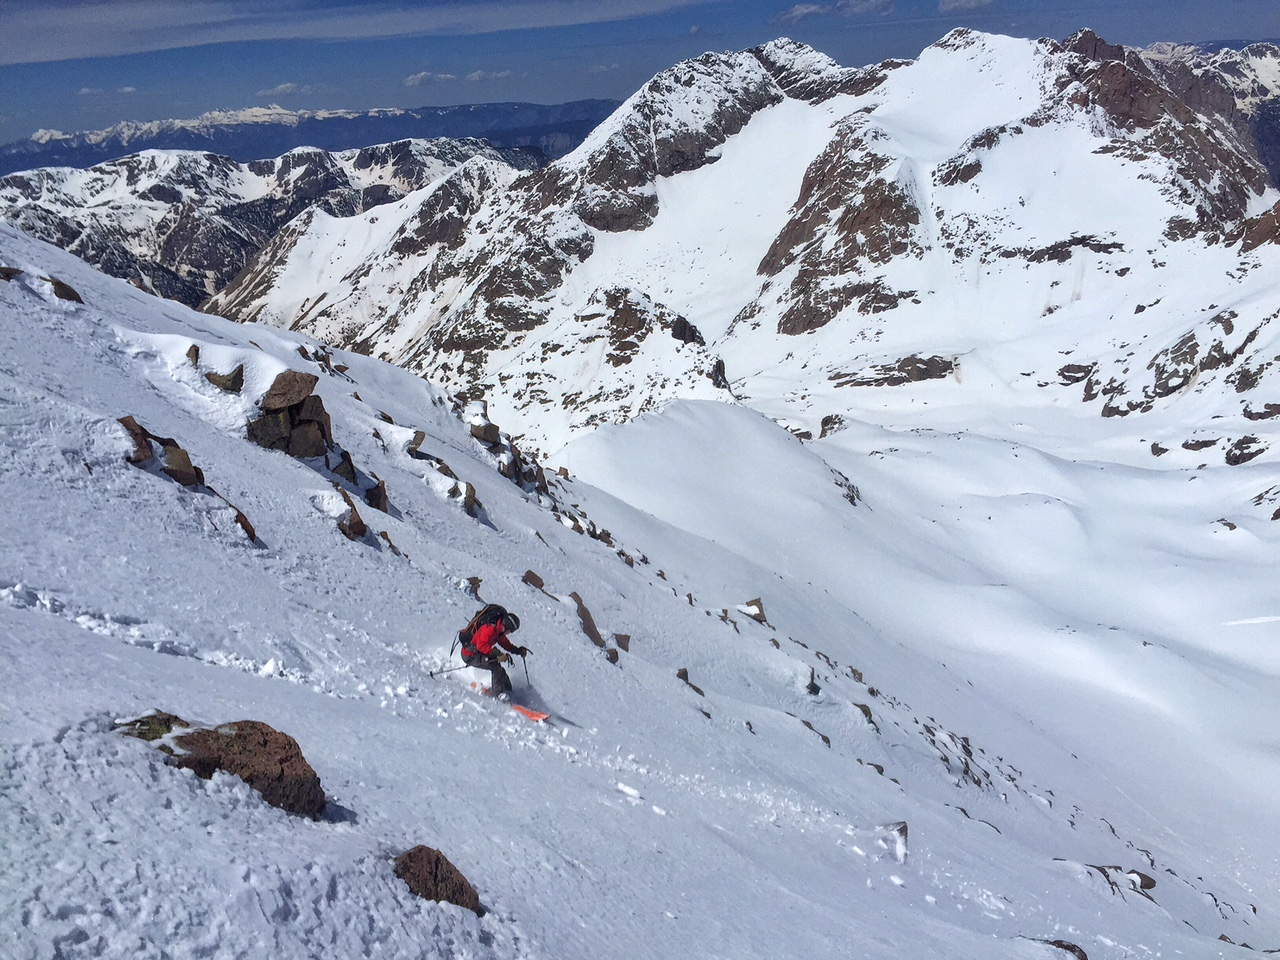 Nice turns on Windom on the north face Widowmaker.